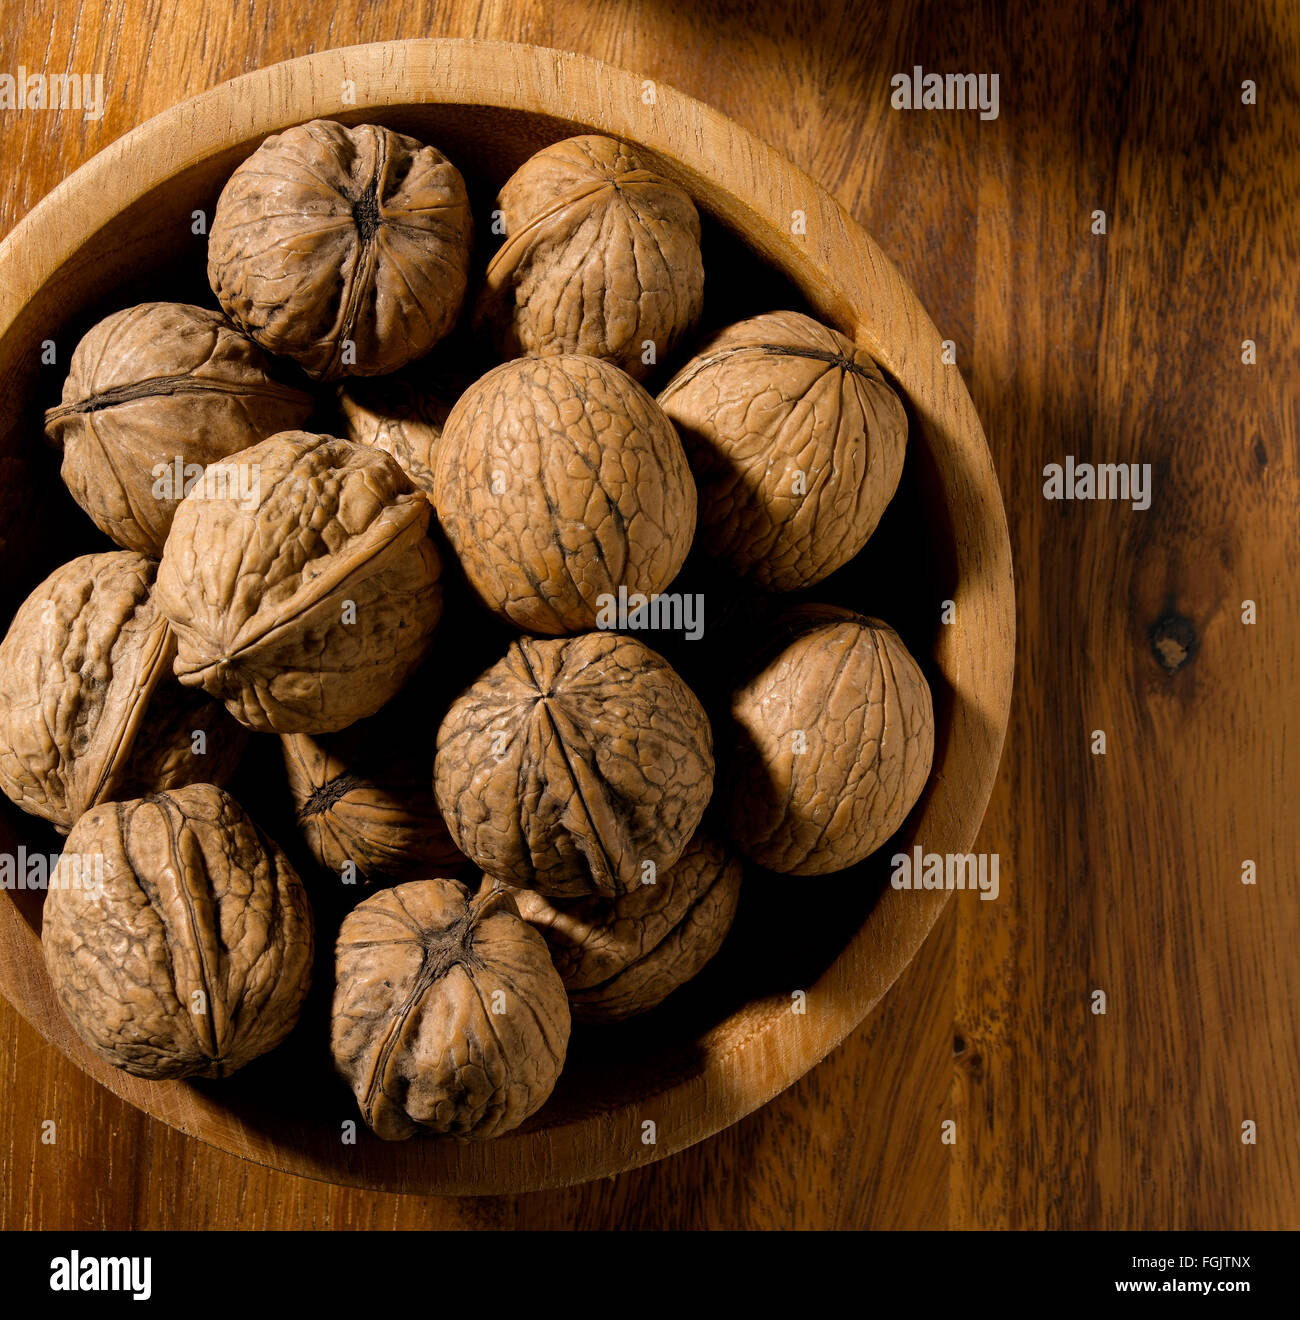 Walnut isolated in bowl on tabletop - Stock Image